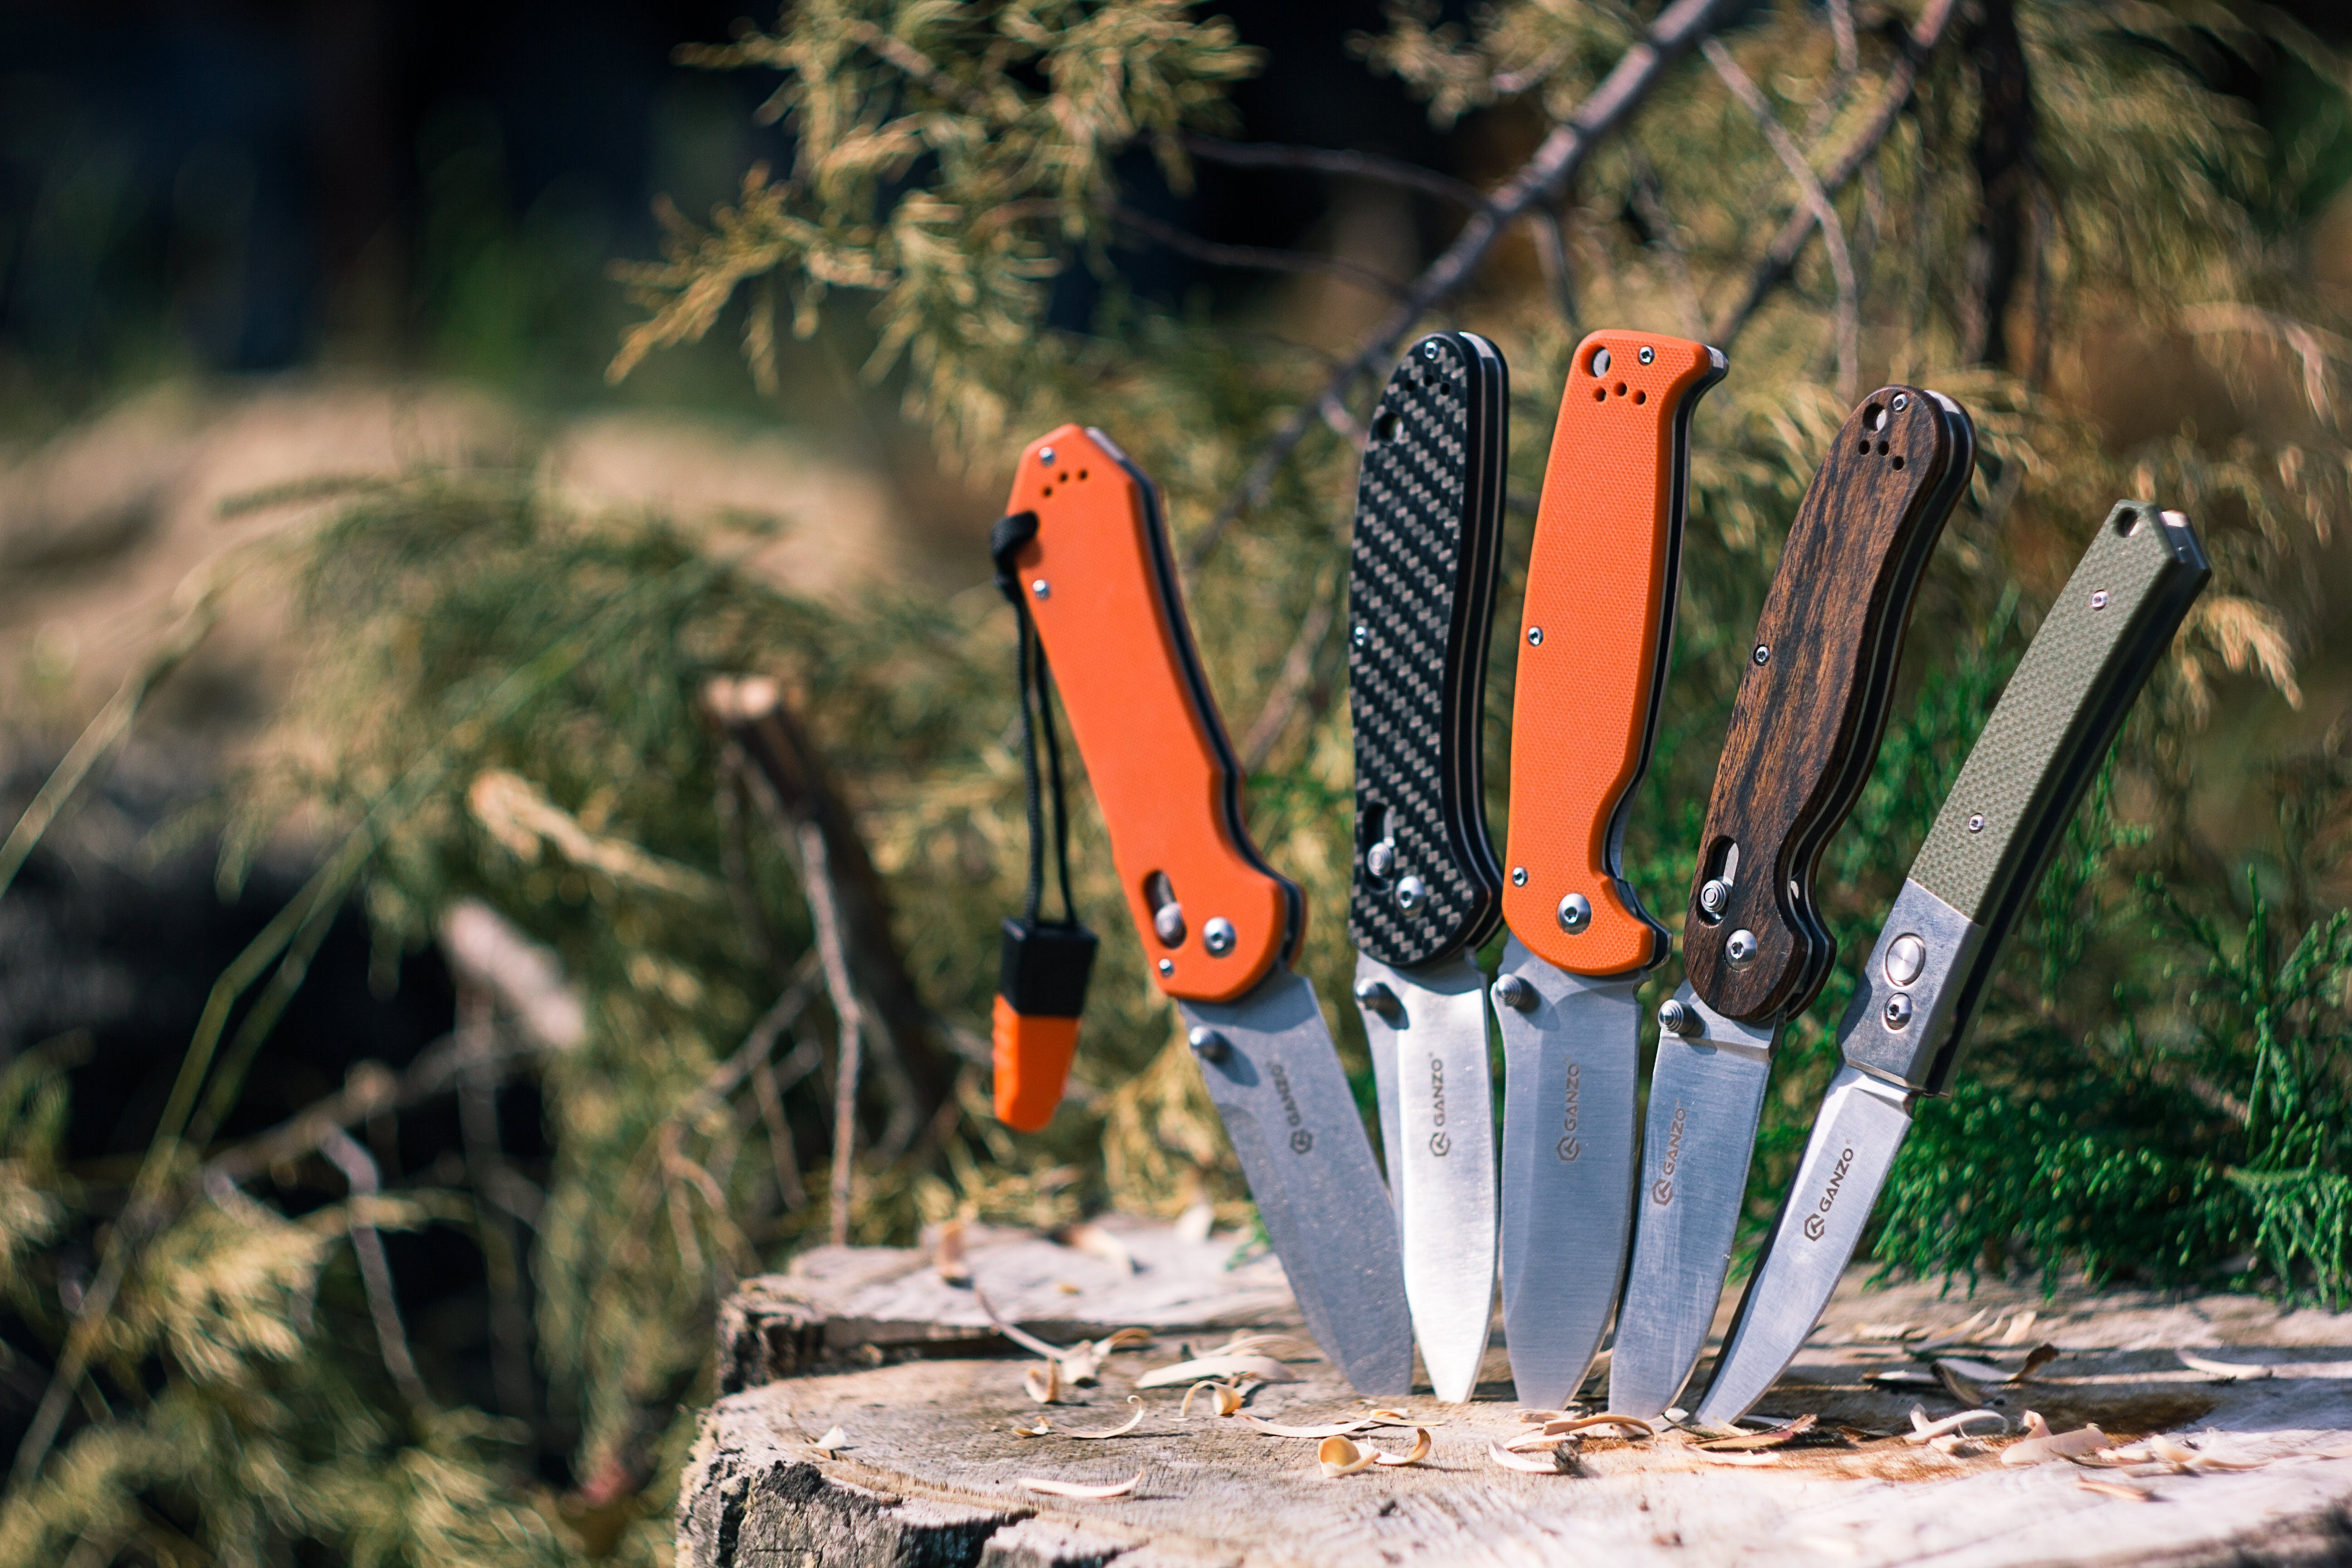 Five Pocketknives Impaled on Tree Trunk